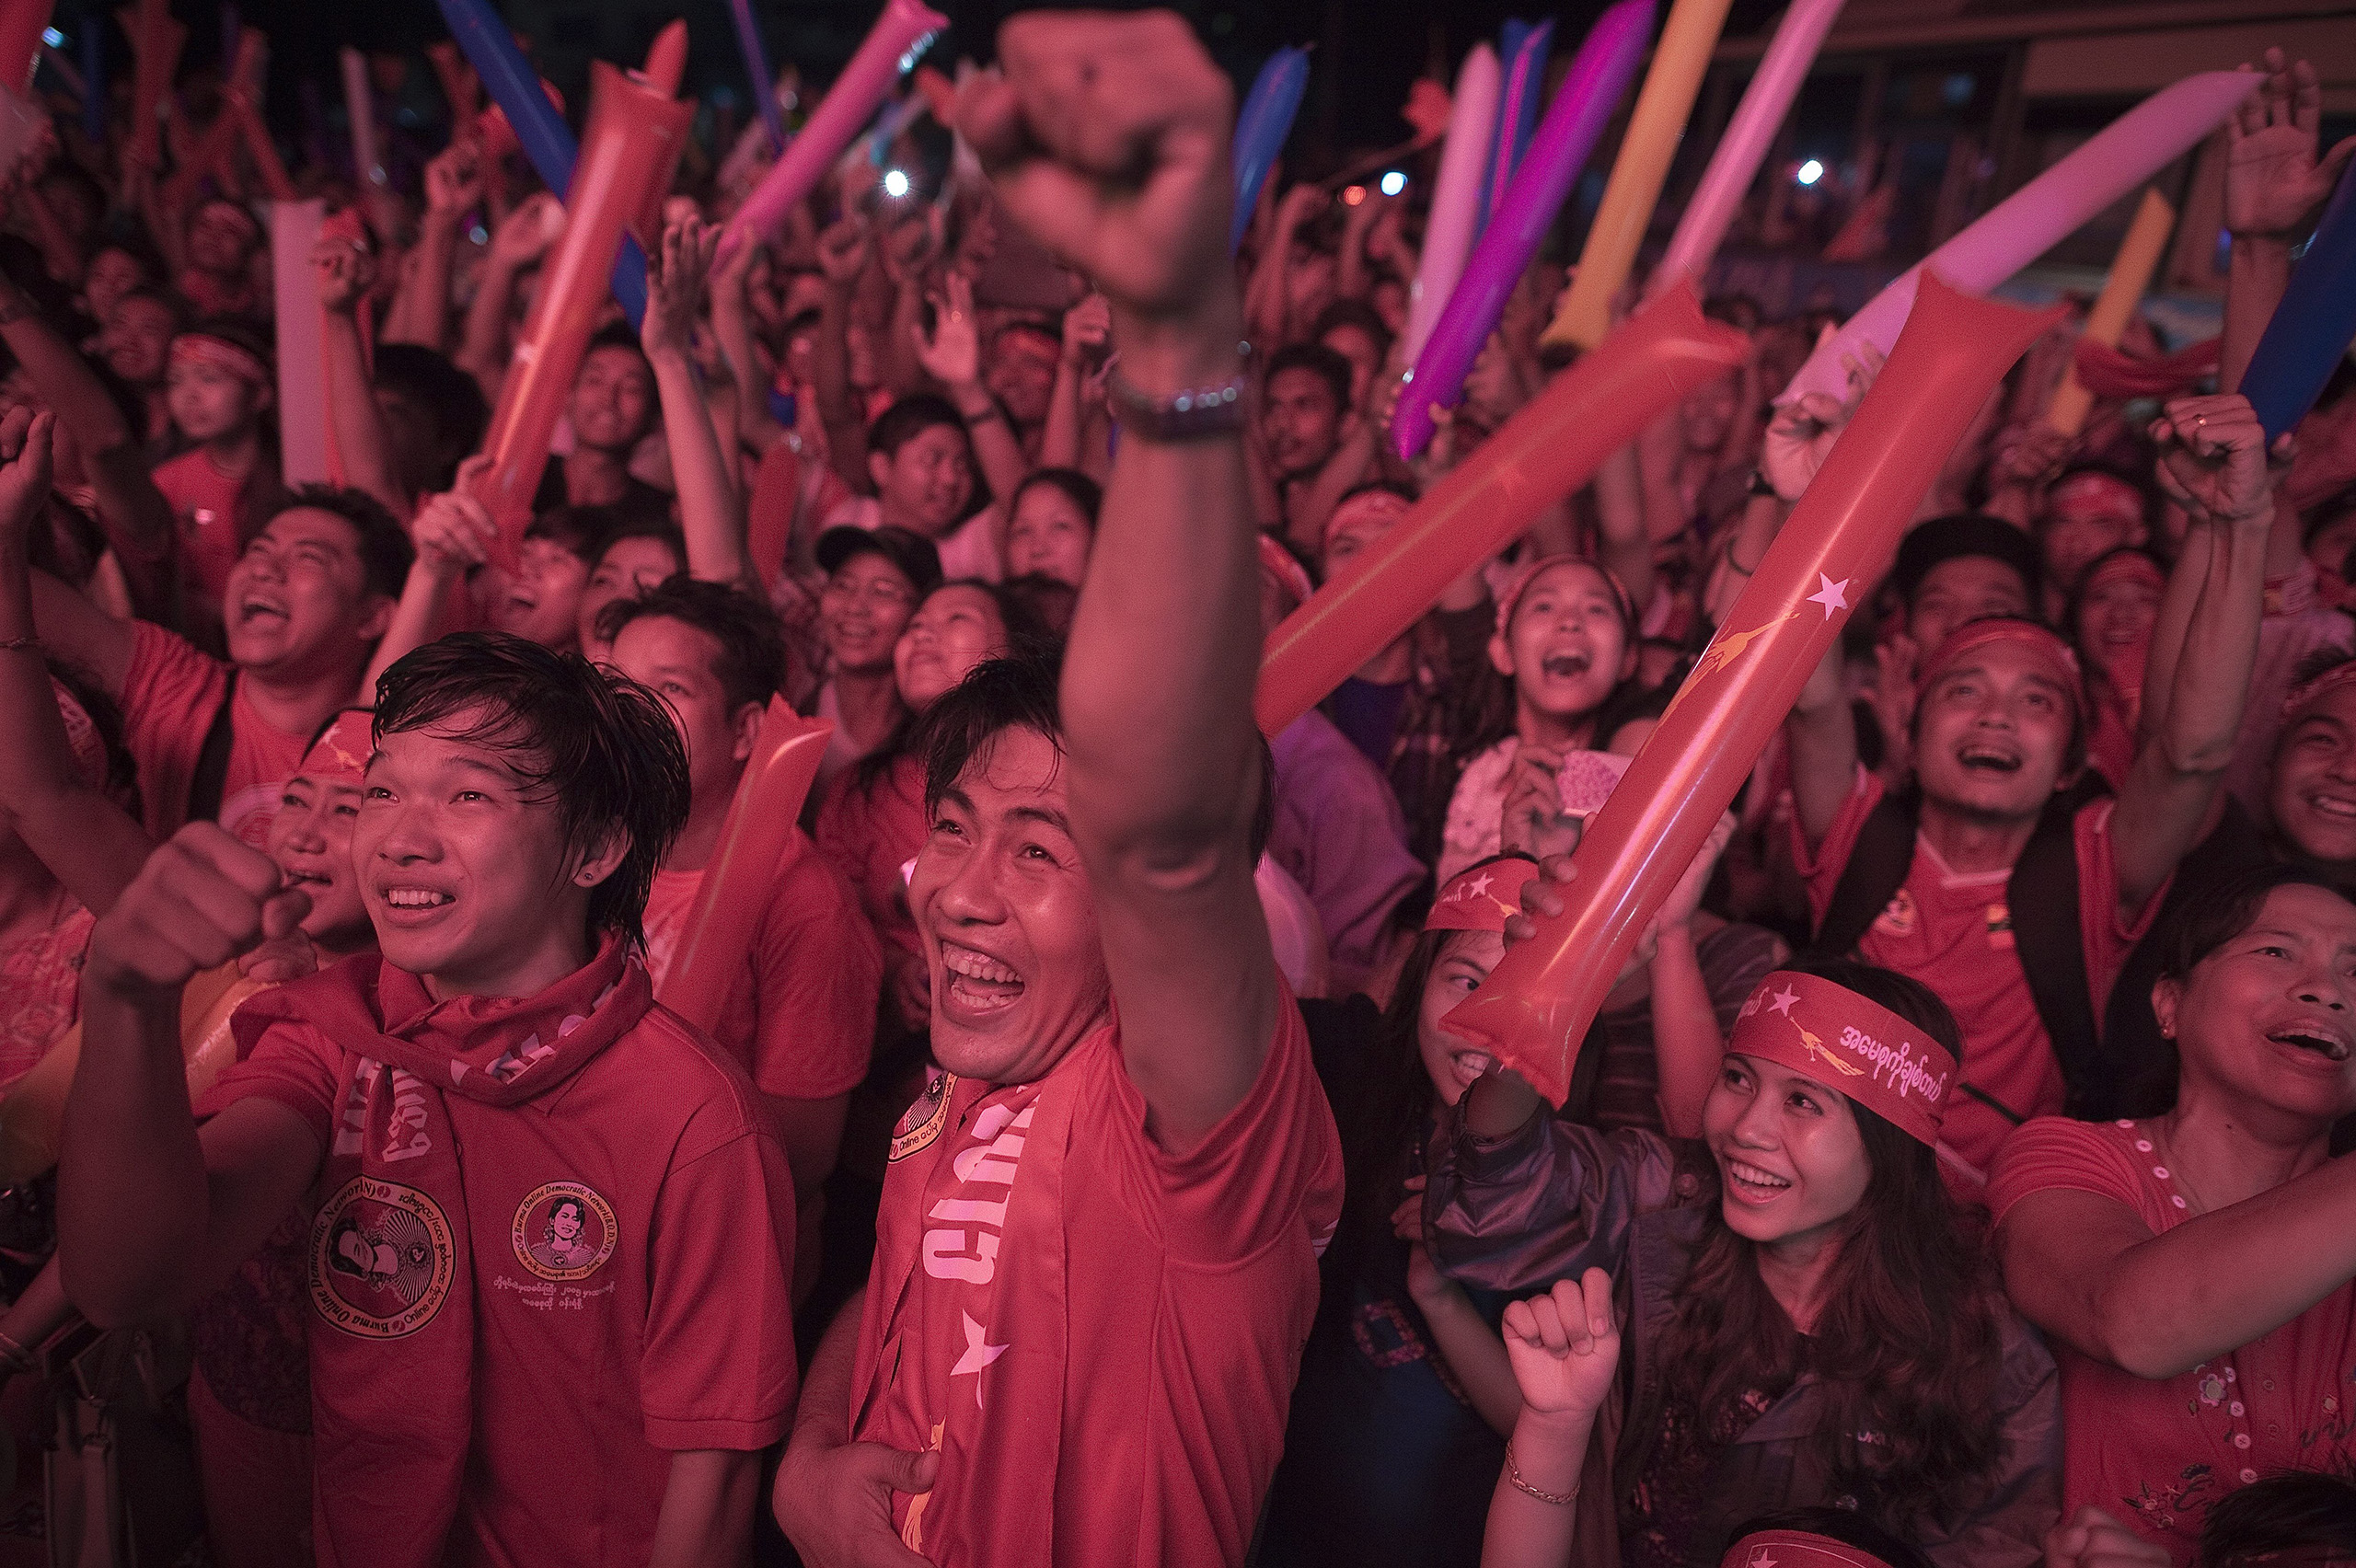 Supporters of Aung San Suu Kyi celebrate in Rangoon on Nov. 9 as they hear the results of Burma's election.